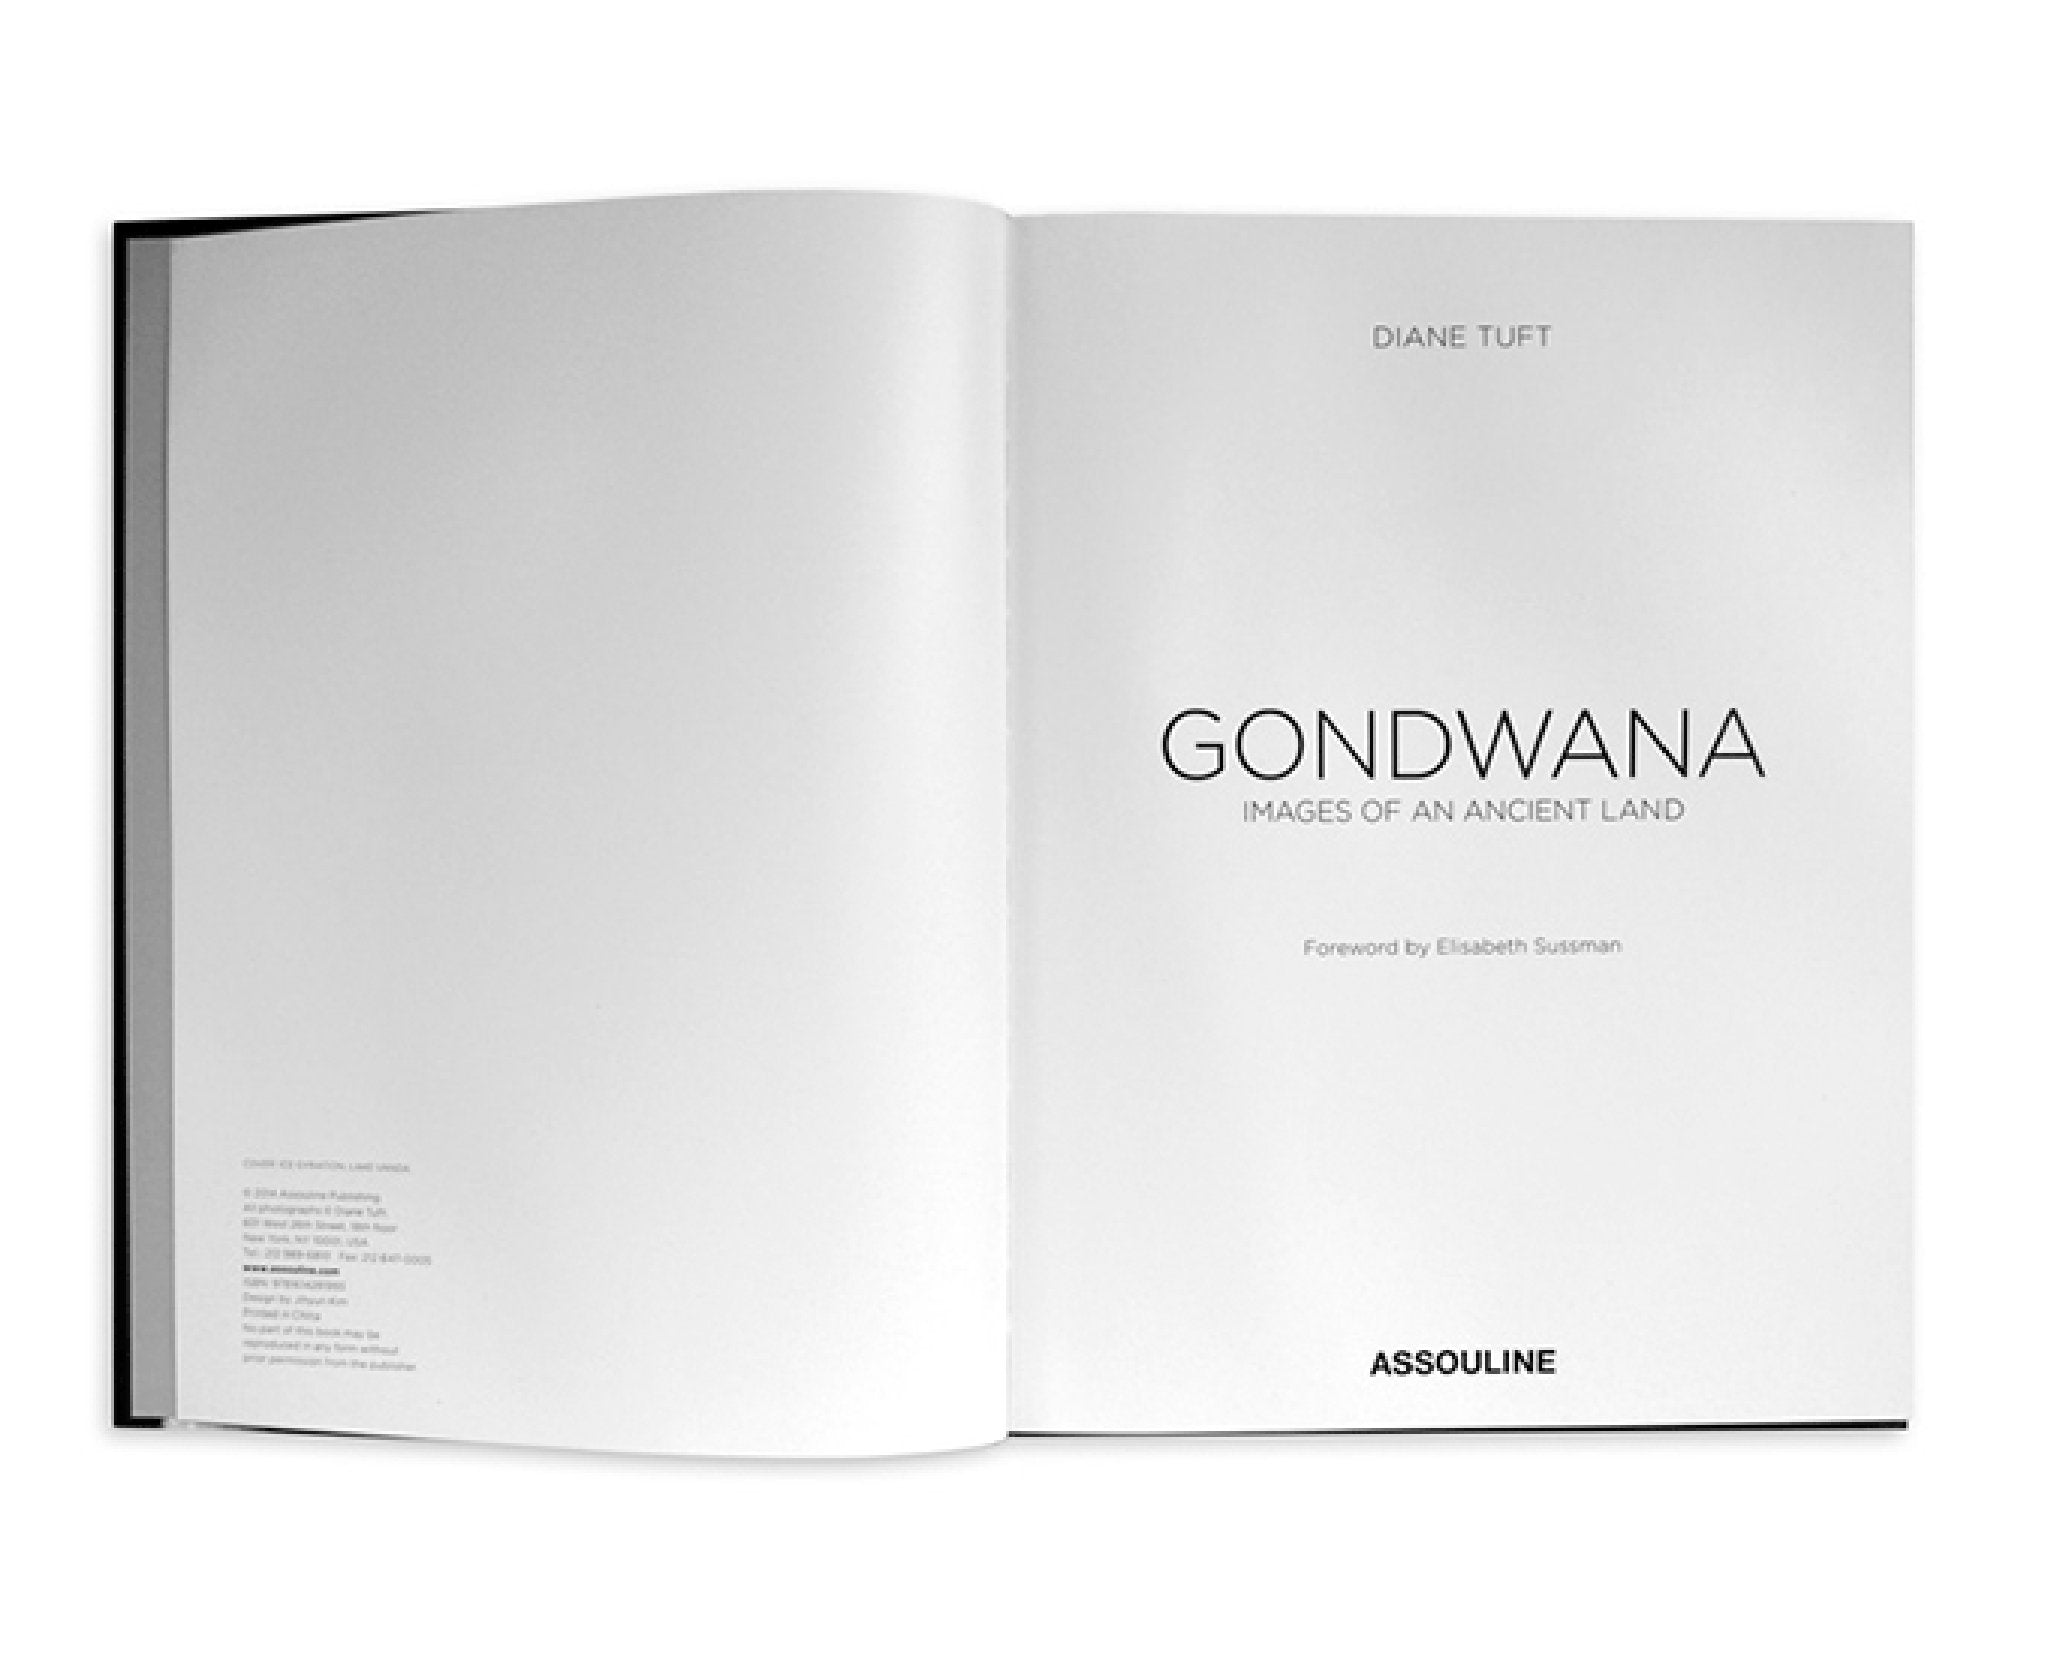 Gondwana - Images of an Ancient Land